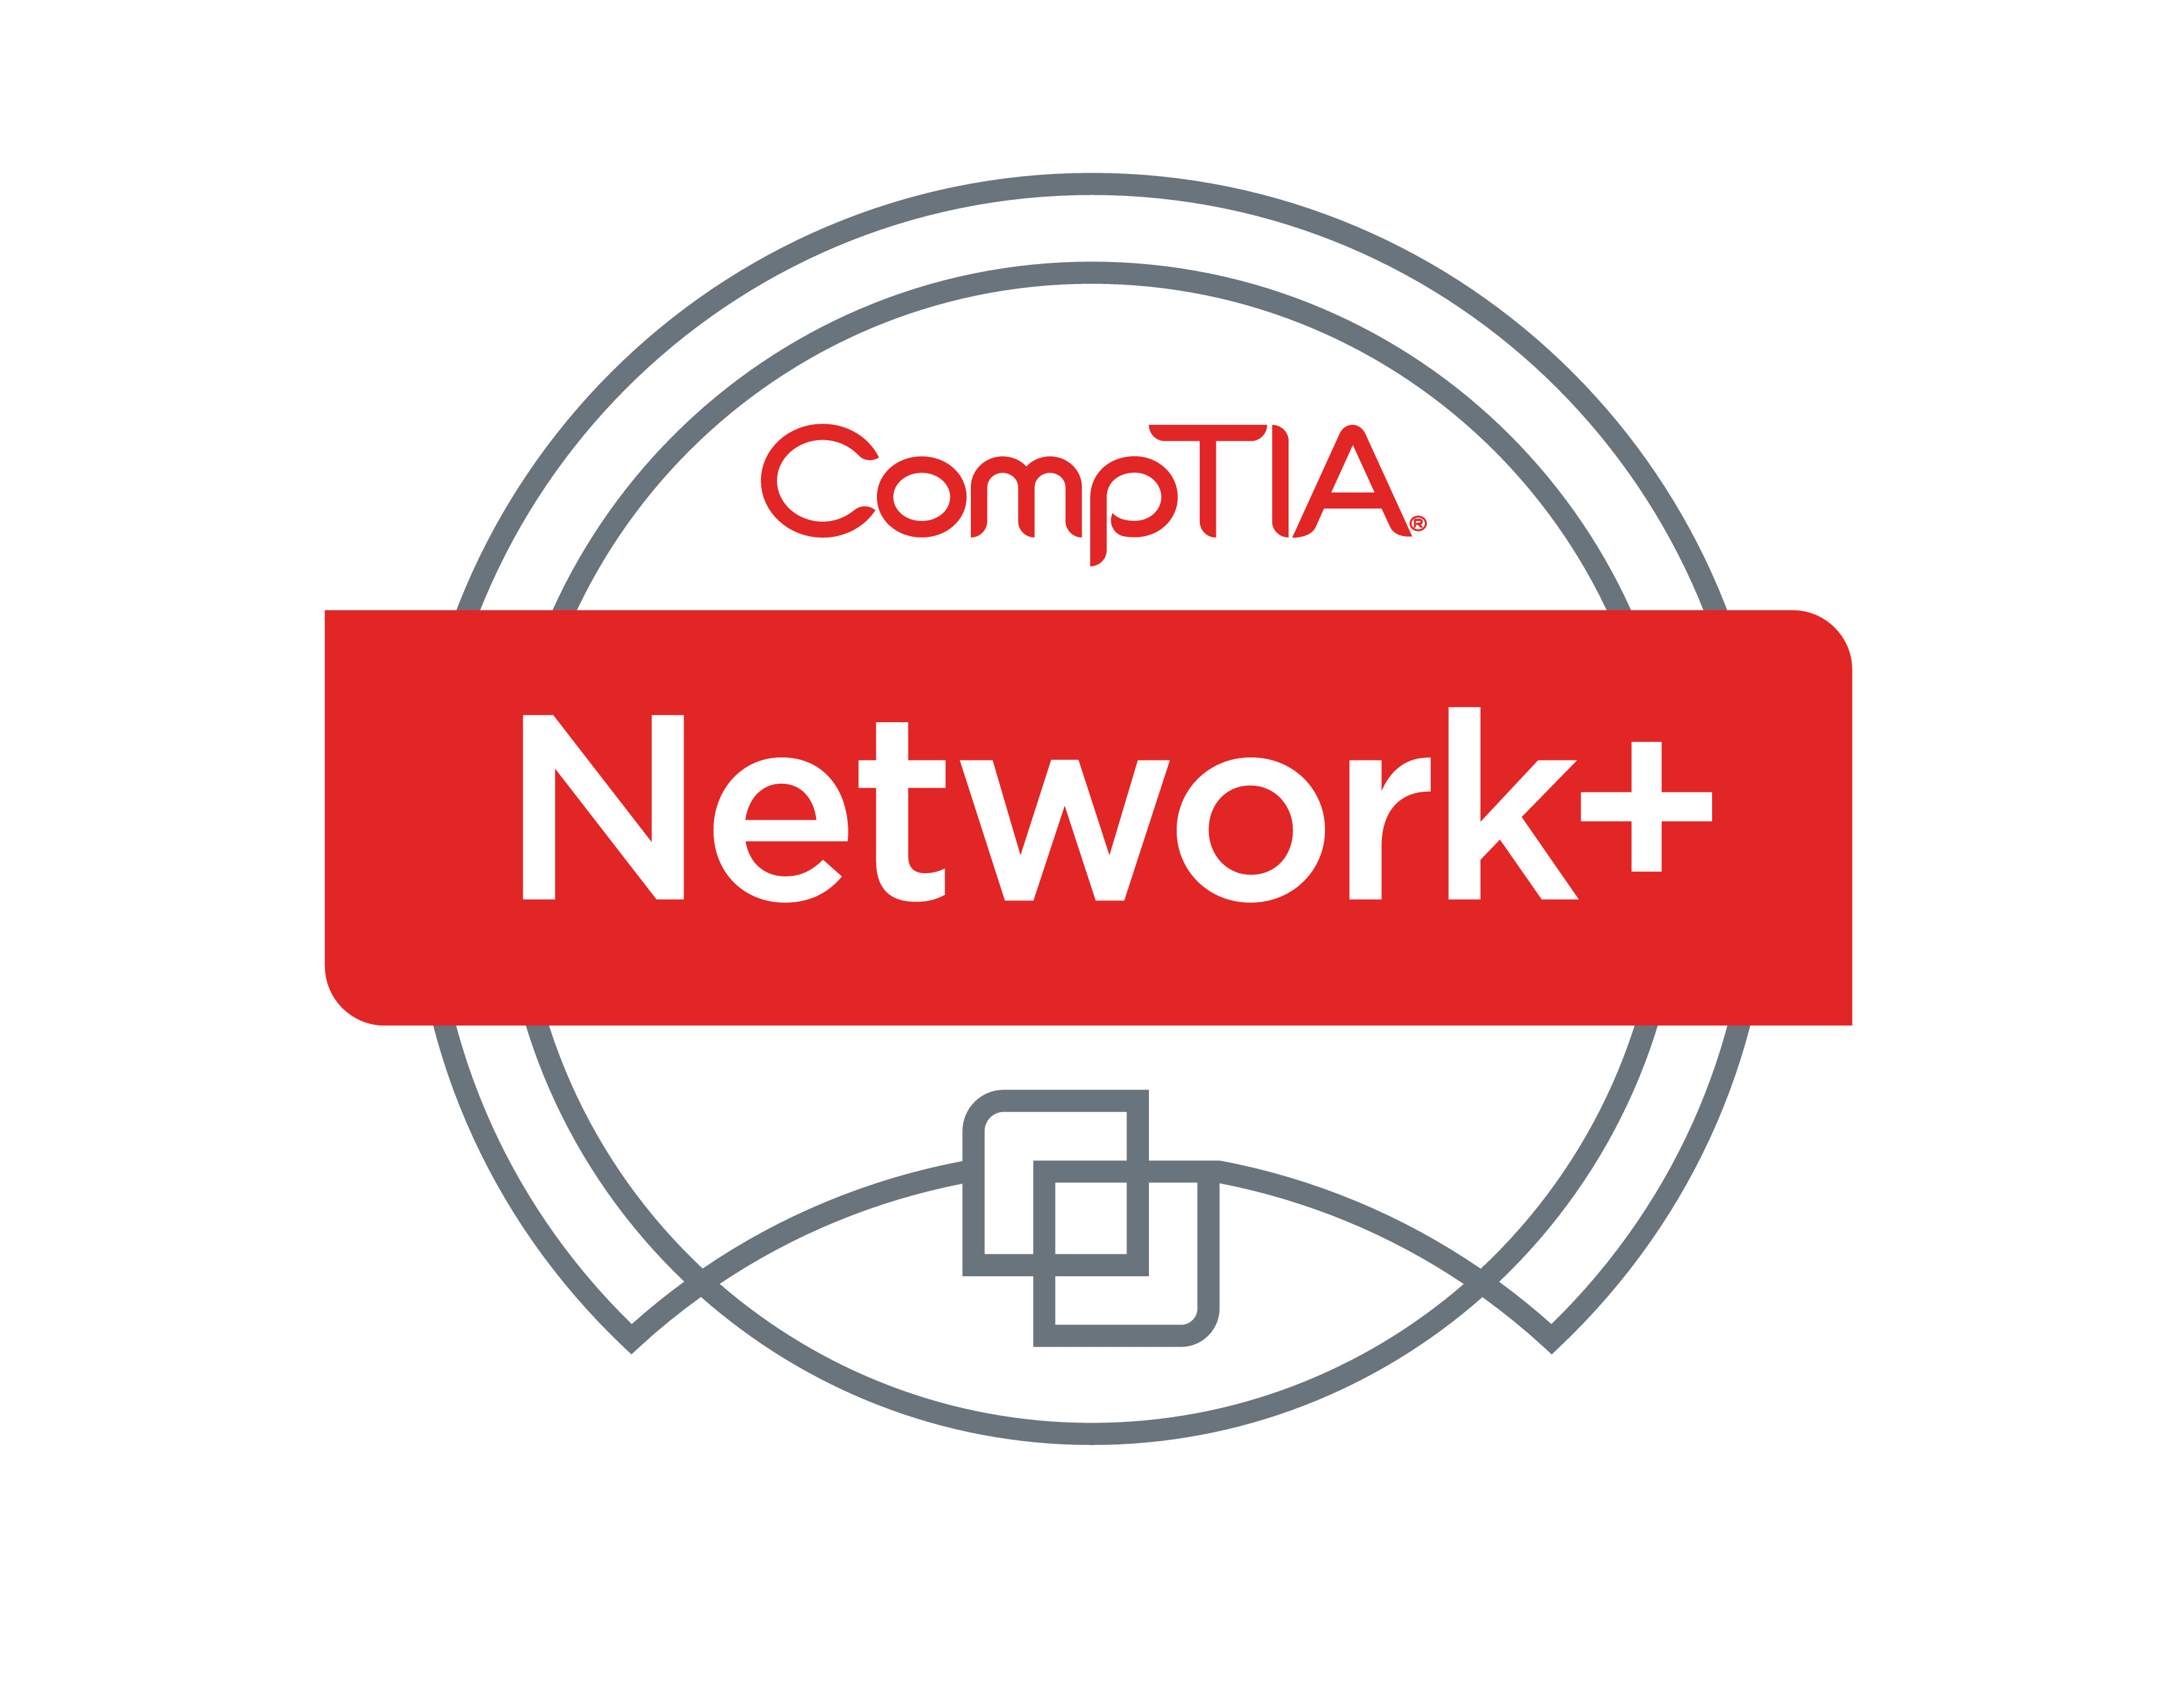 Comptia network early expiration voucher n10 006 network n10 006 voucher expires 1292018 save 15 xflitez Image collections